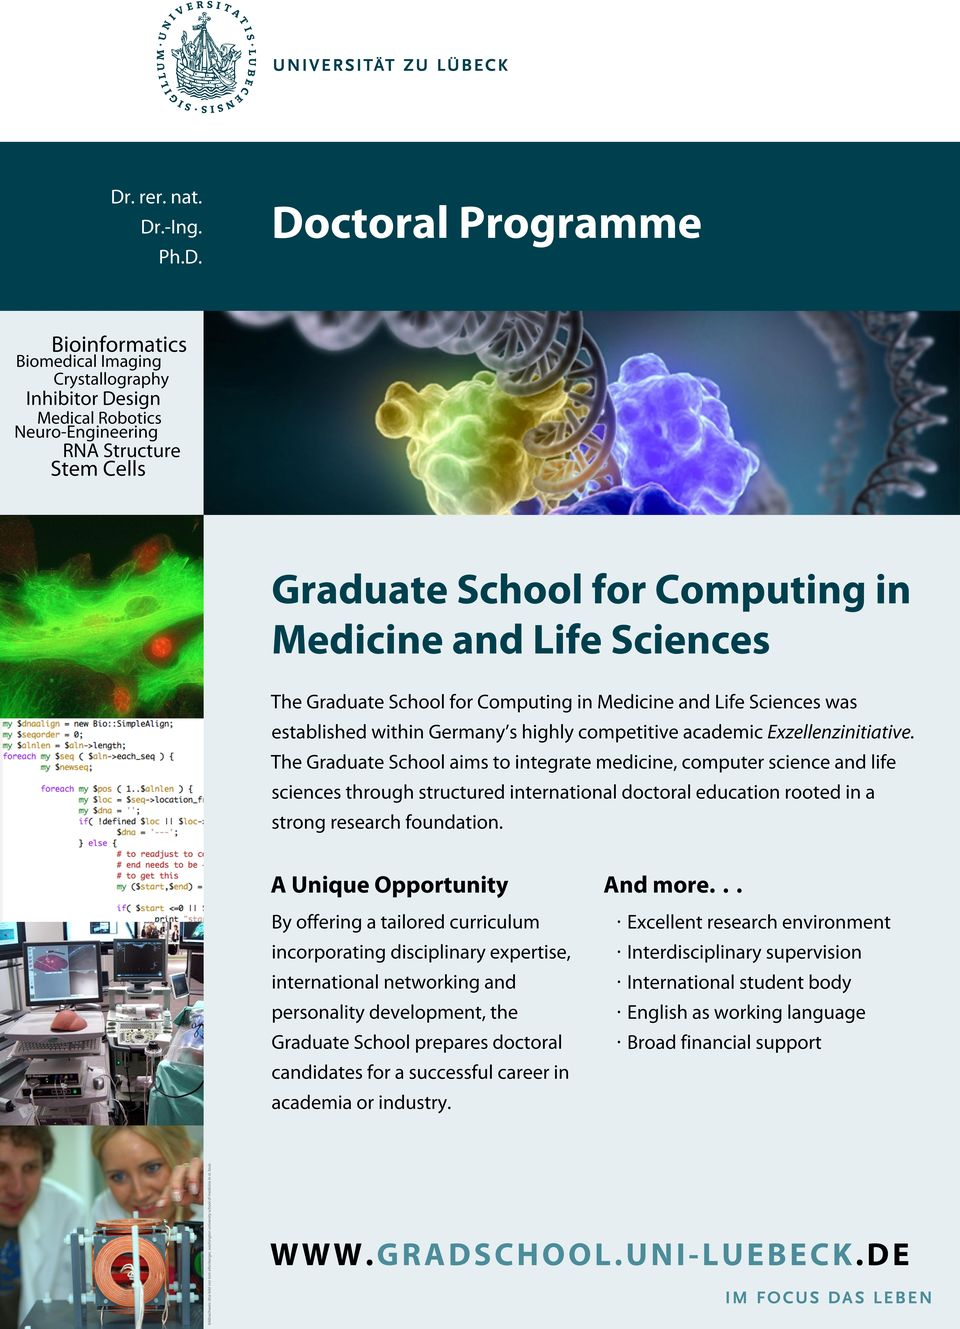 The Graduate School aims to integrate medicine, computer science and life sciences through structured international doctoral education rooted in a strong research foundation.